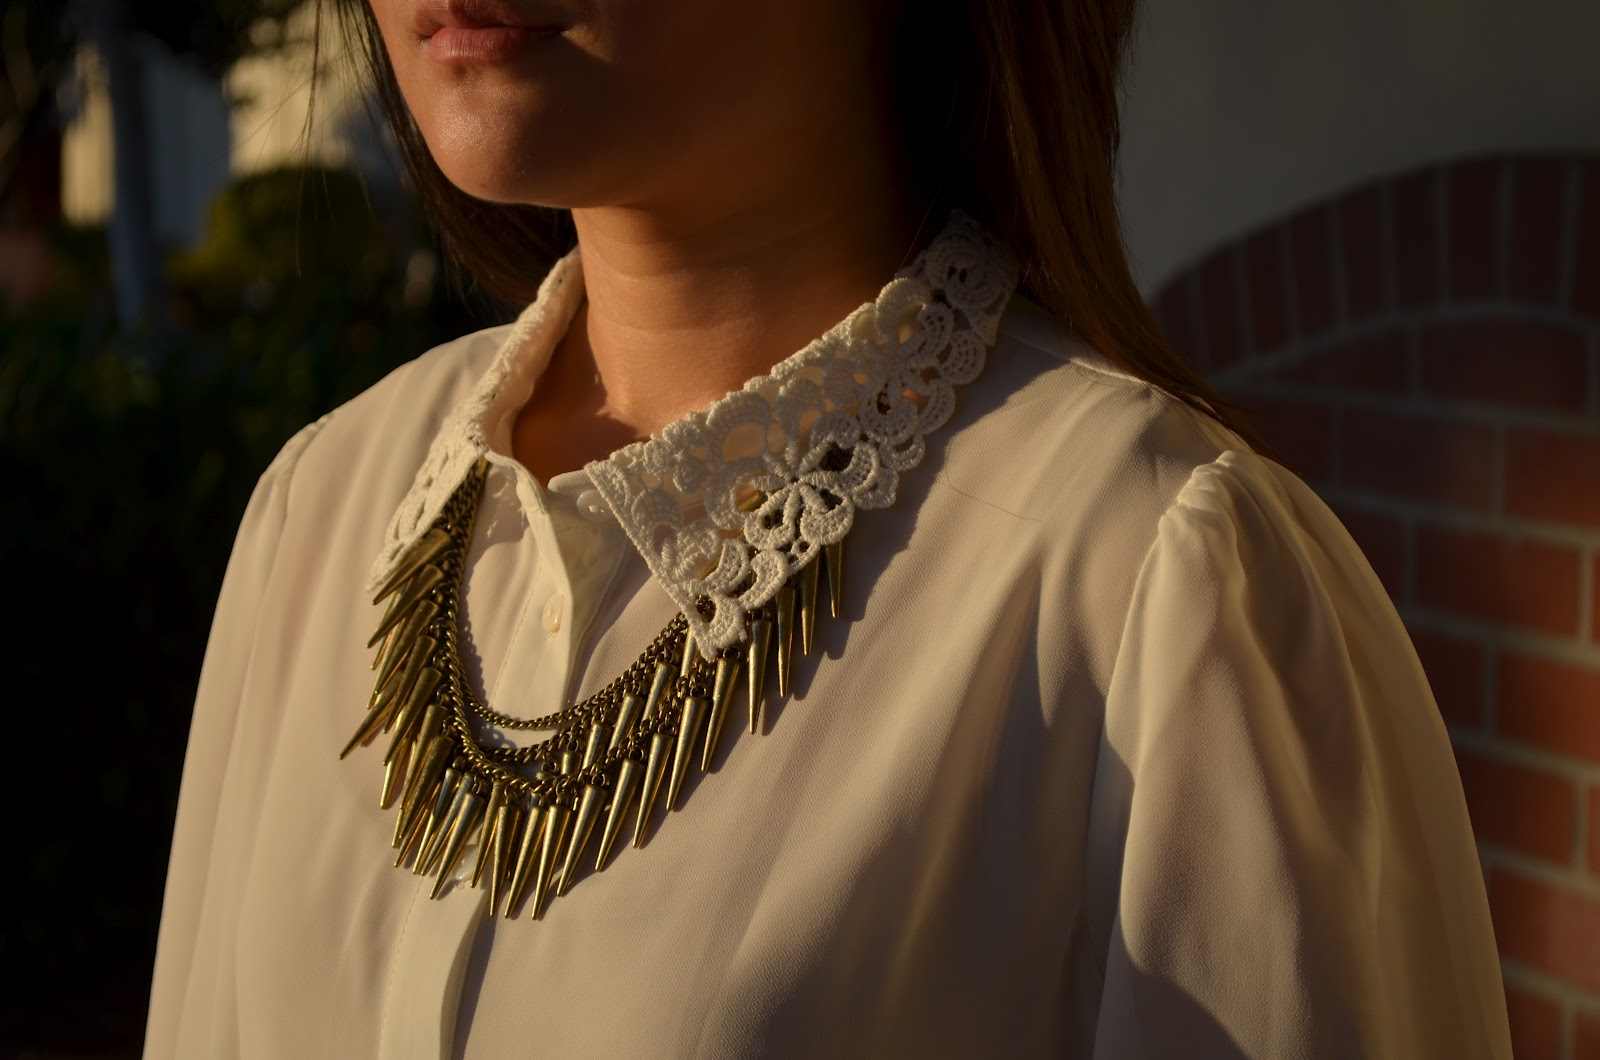 forever 21, forever 21 blouse, spikey necklace, spike, spike necklace, lace collar